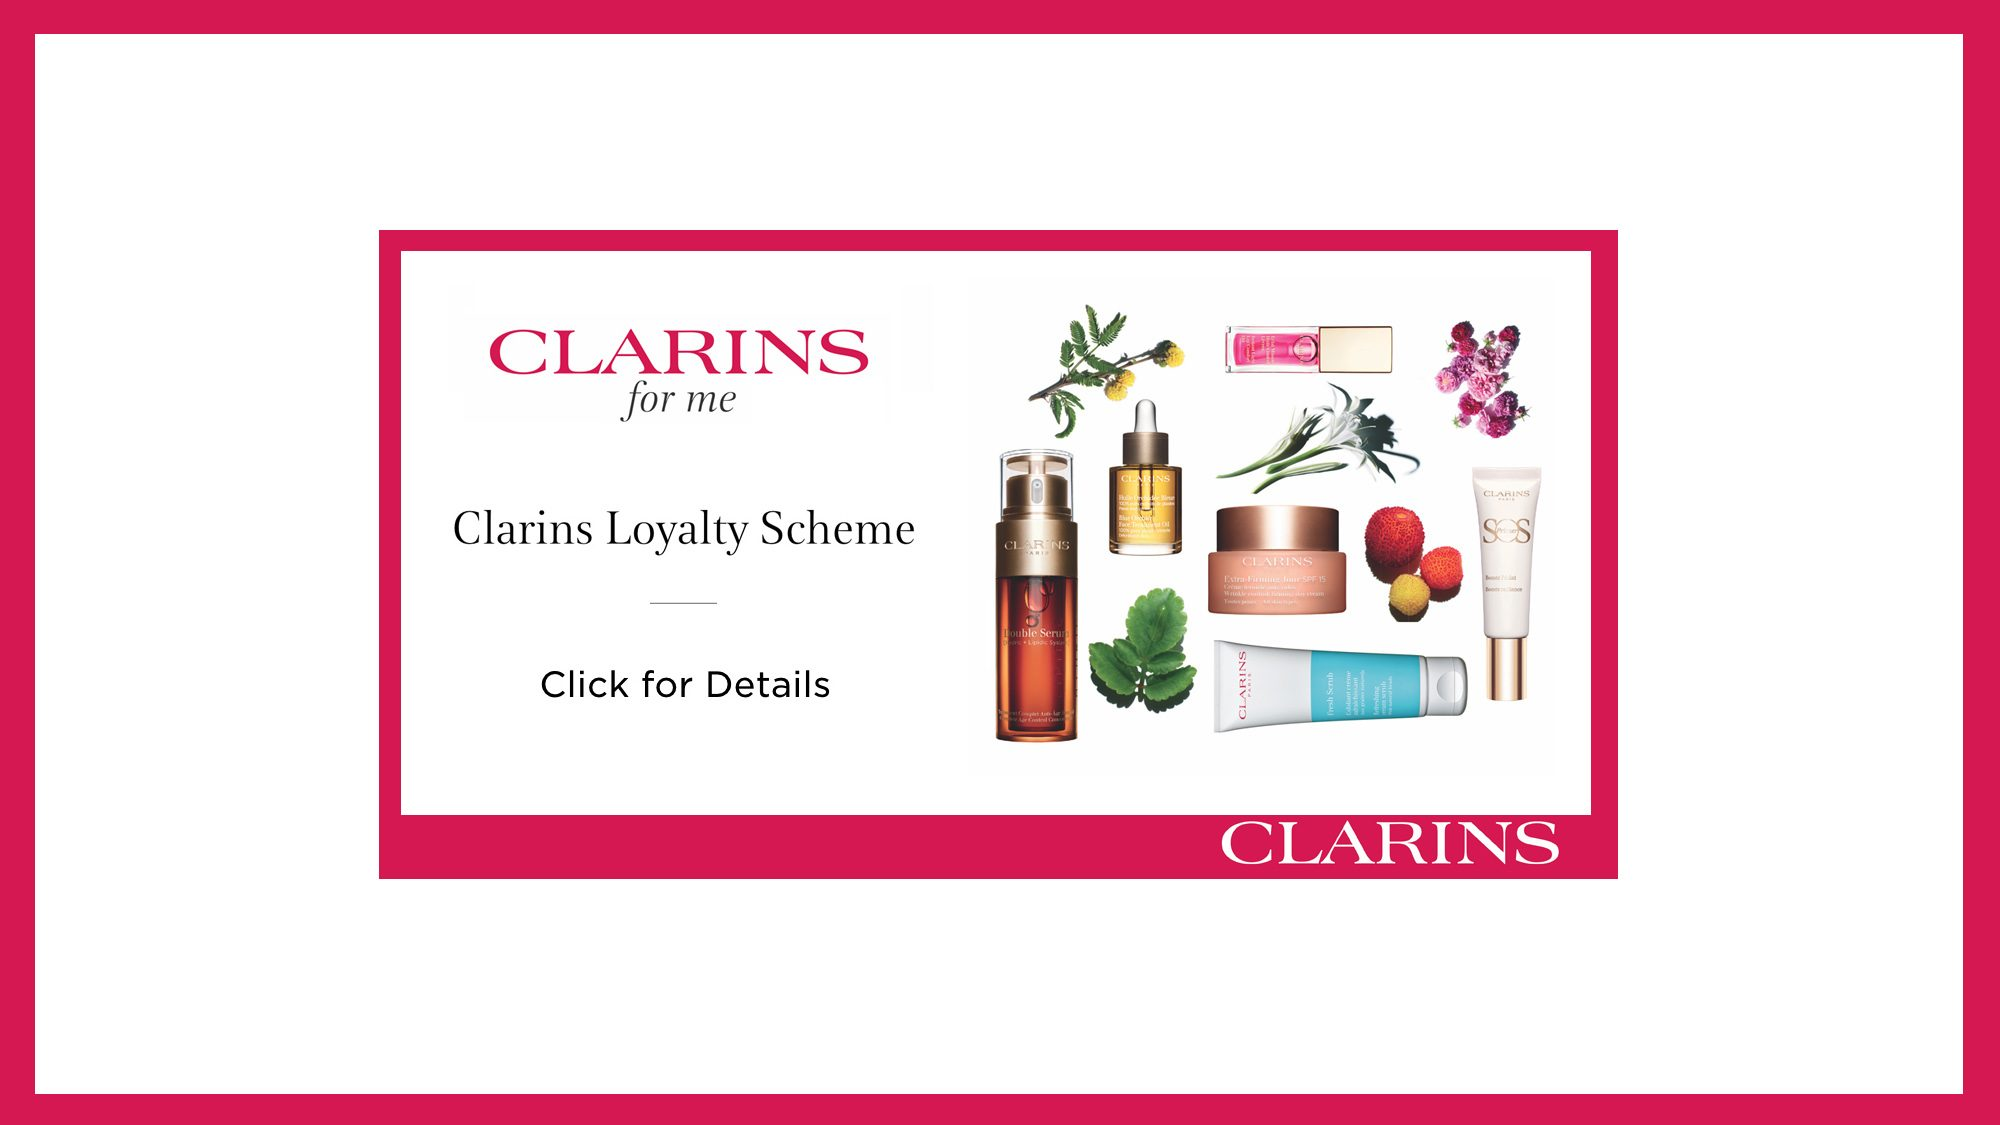 Clarins Loyalty Scheme Banner Click for Details Red 2020